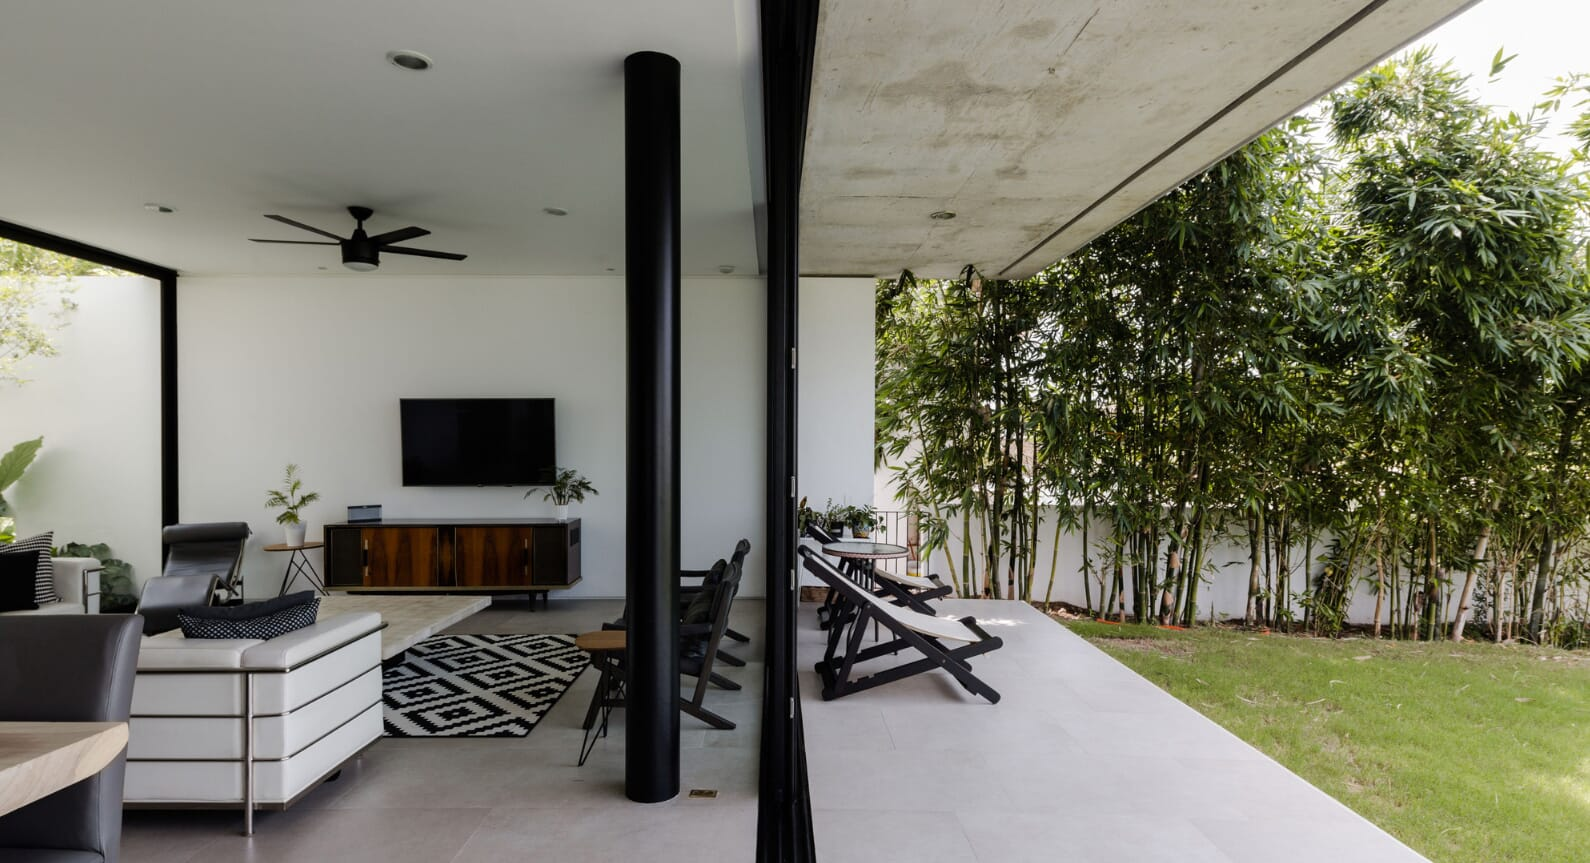 How A Patio Is The Key To This Mexican Modernist Residence